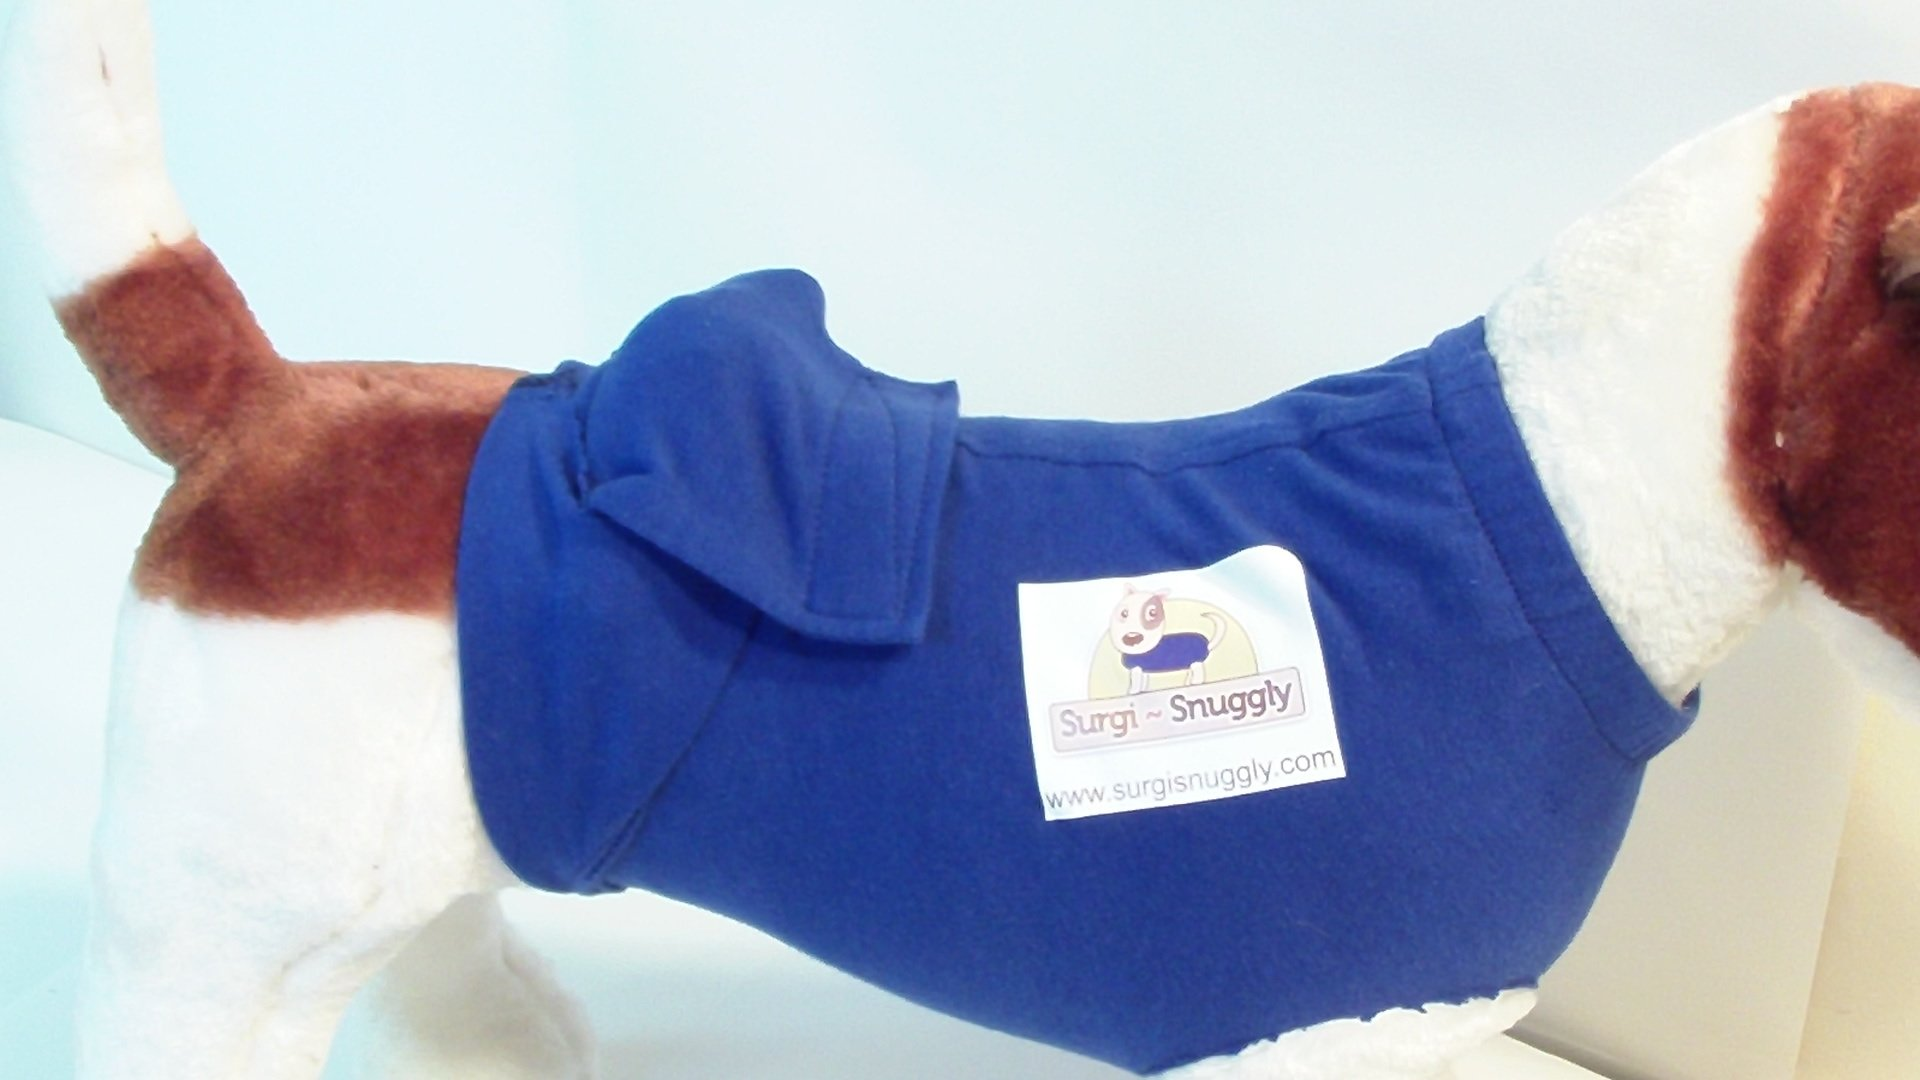 Surgi Snuggly E Collar Alternative, Created By A Veterinarian Specifically to Fit Your Dog, X-Large Long